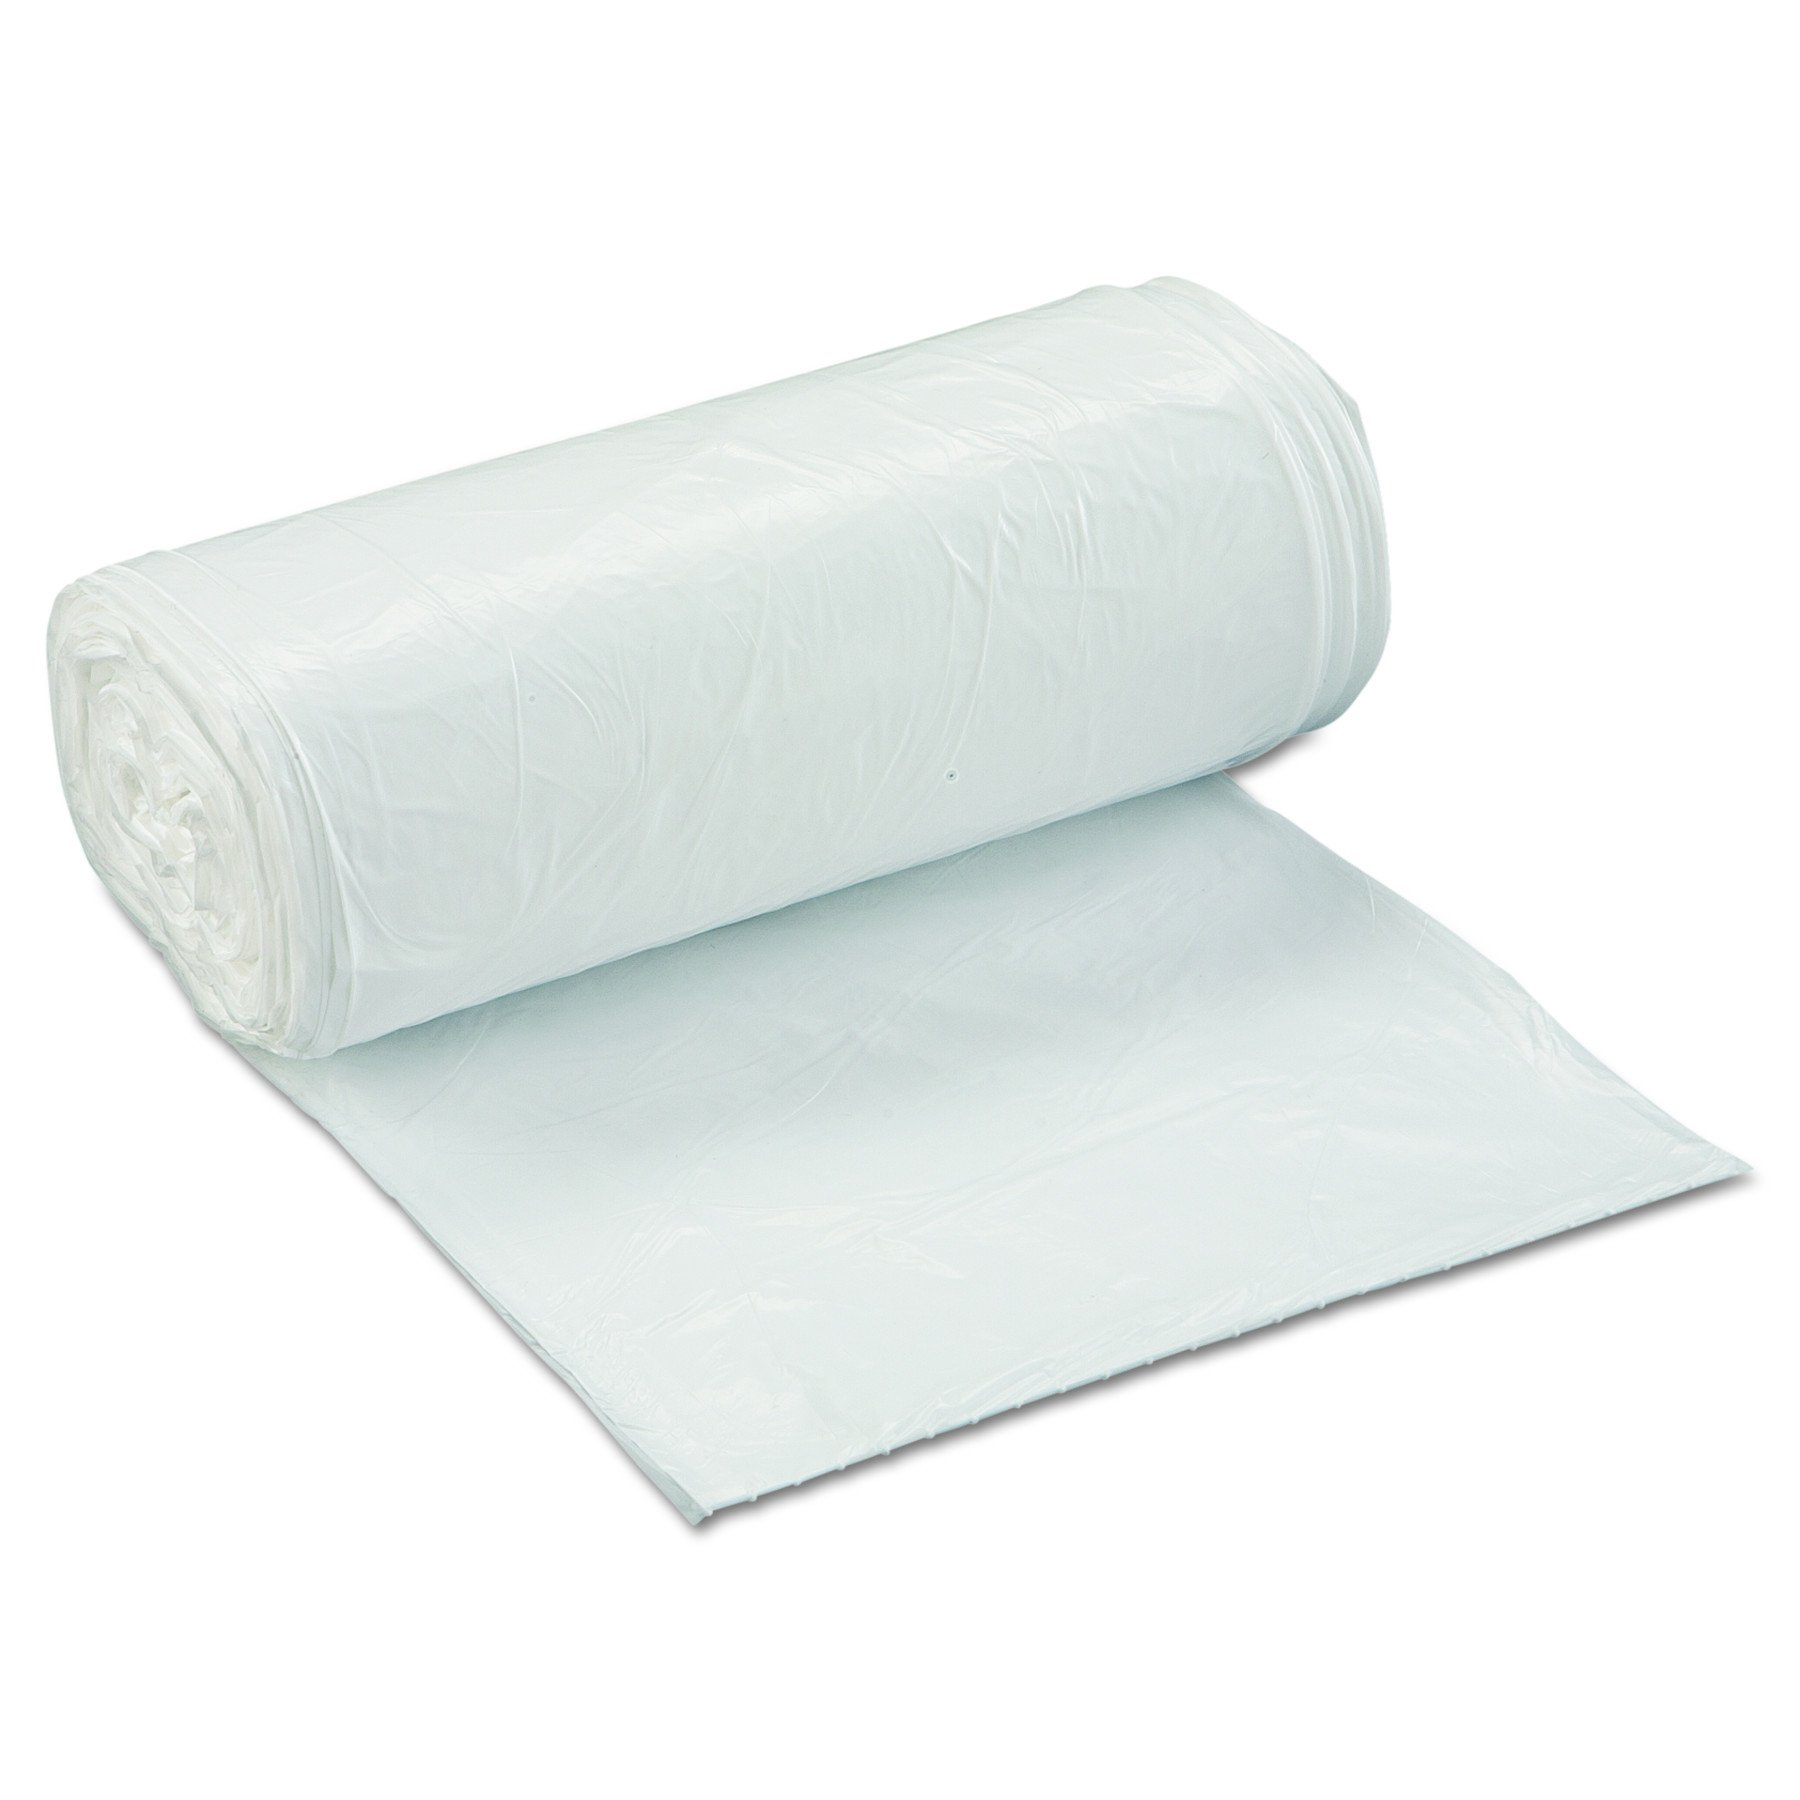 Inteplast Group SL2432XHW Low-Density Can Liner, 24 x 32, 16gal, .5mil, White, Roll of 50 (Case of 10 Rolls) by Inteplast Group (Image #1)